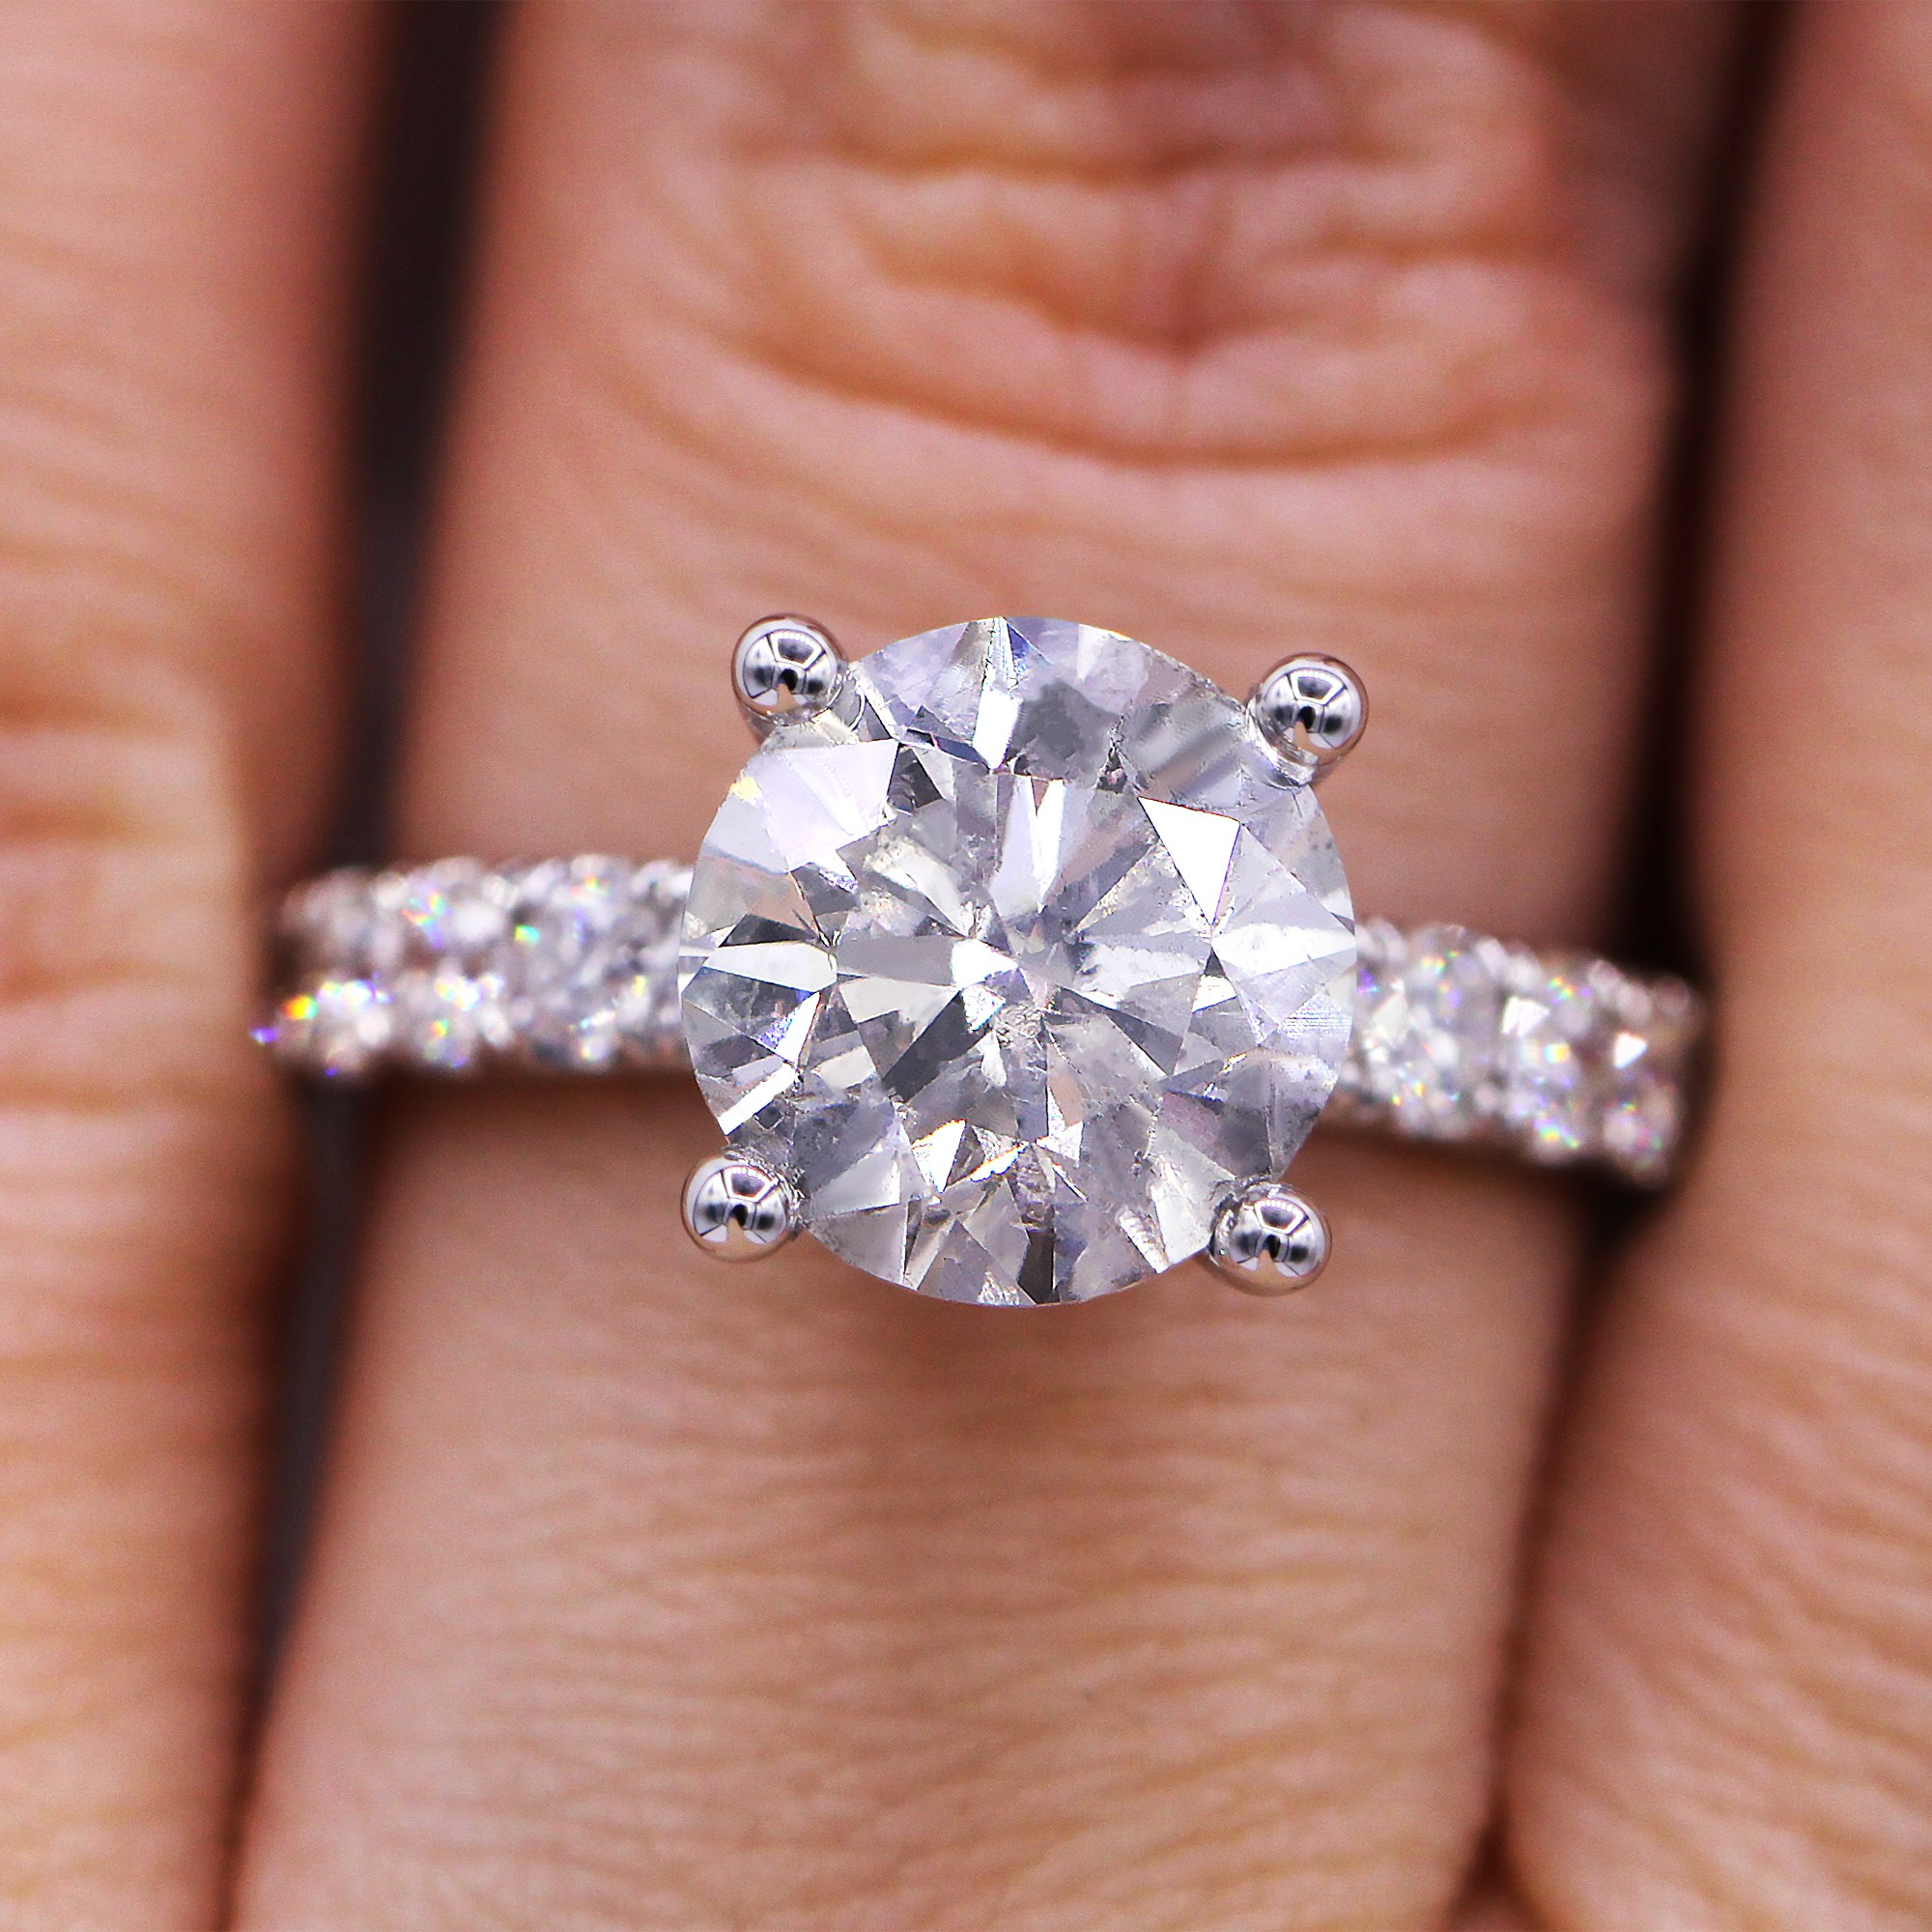 Fascinating  3.88 cts diamond engagement ring